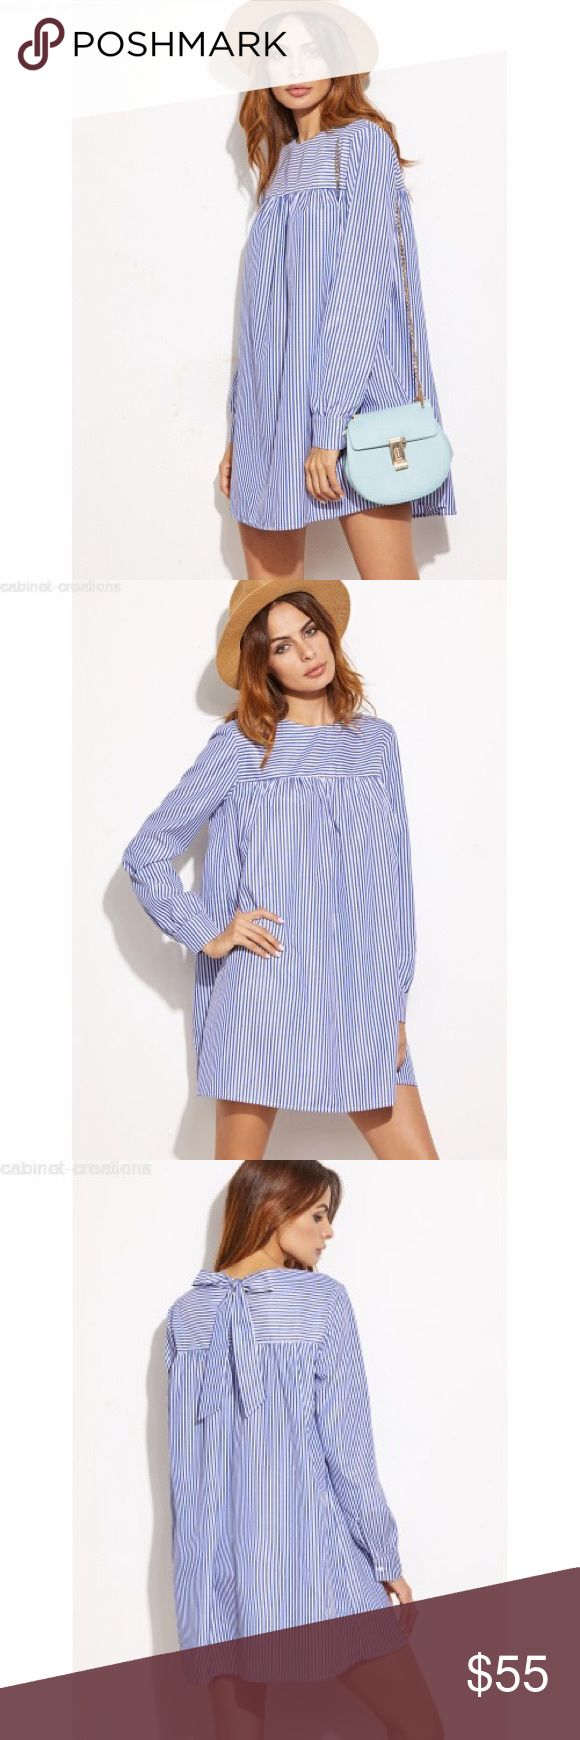 Blue Striped Tie Back Shift Shirt Dress NWOT Blue Striped Tie Back Shift Shirt Dress  Get Spring and Summer ready with this casual and cute Shift Dress. Pair with your favorite accessories and handbag for a chic look! In Excellent Condition.  Style : Shift Pattern: Striped Dresses